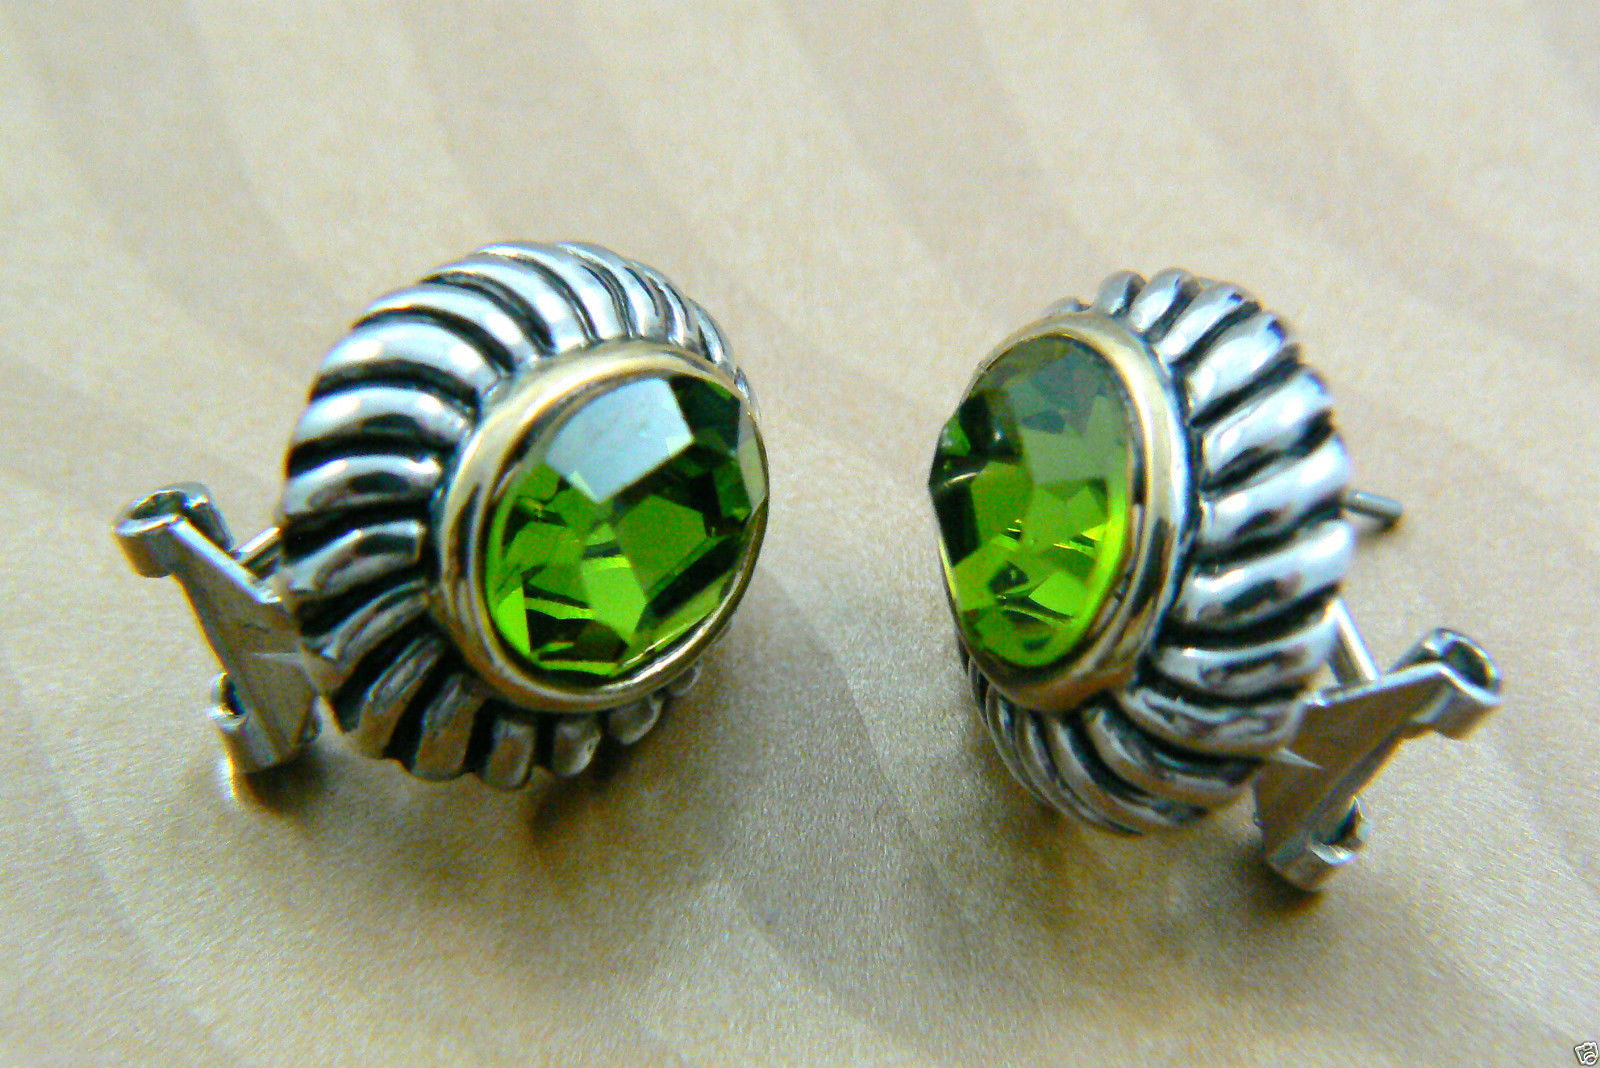 Silver tone Faceted Green Rhinestone crystal oval stud earrings $0 sh new image 4